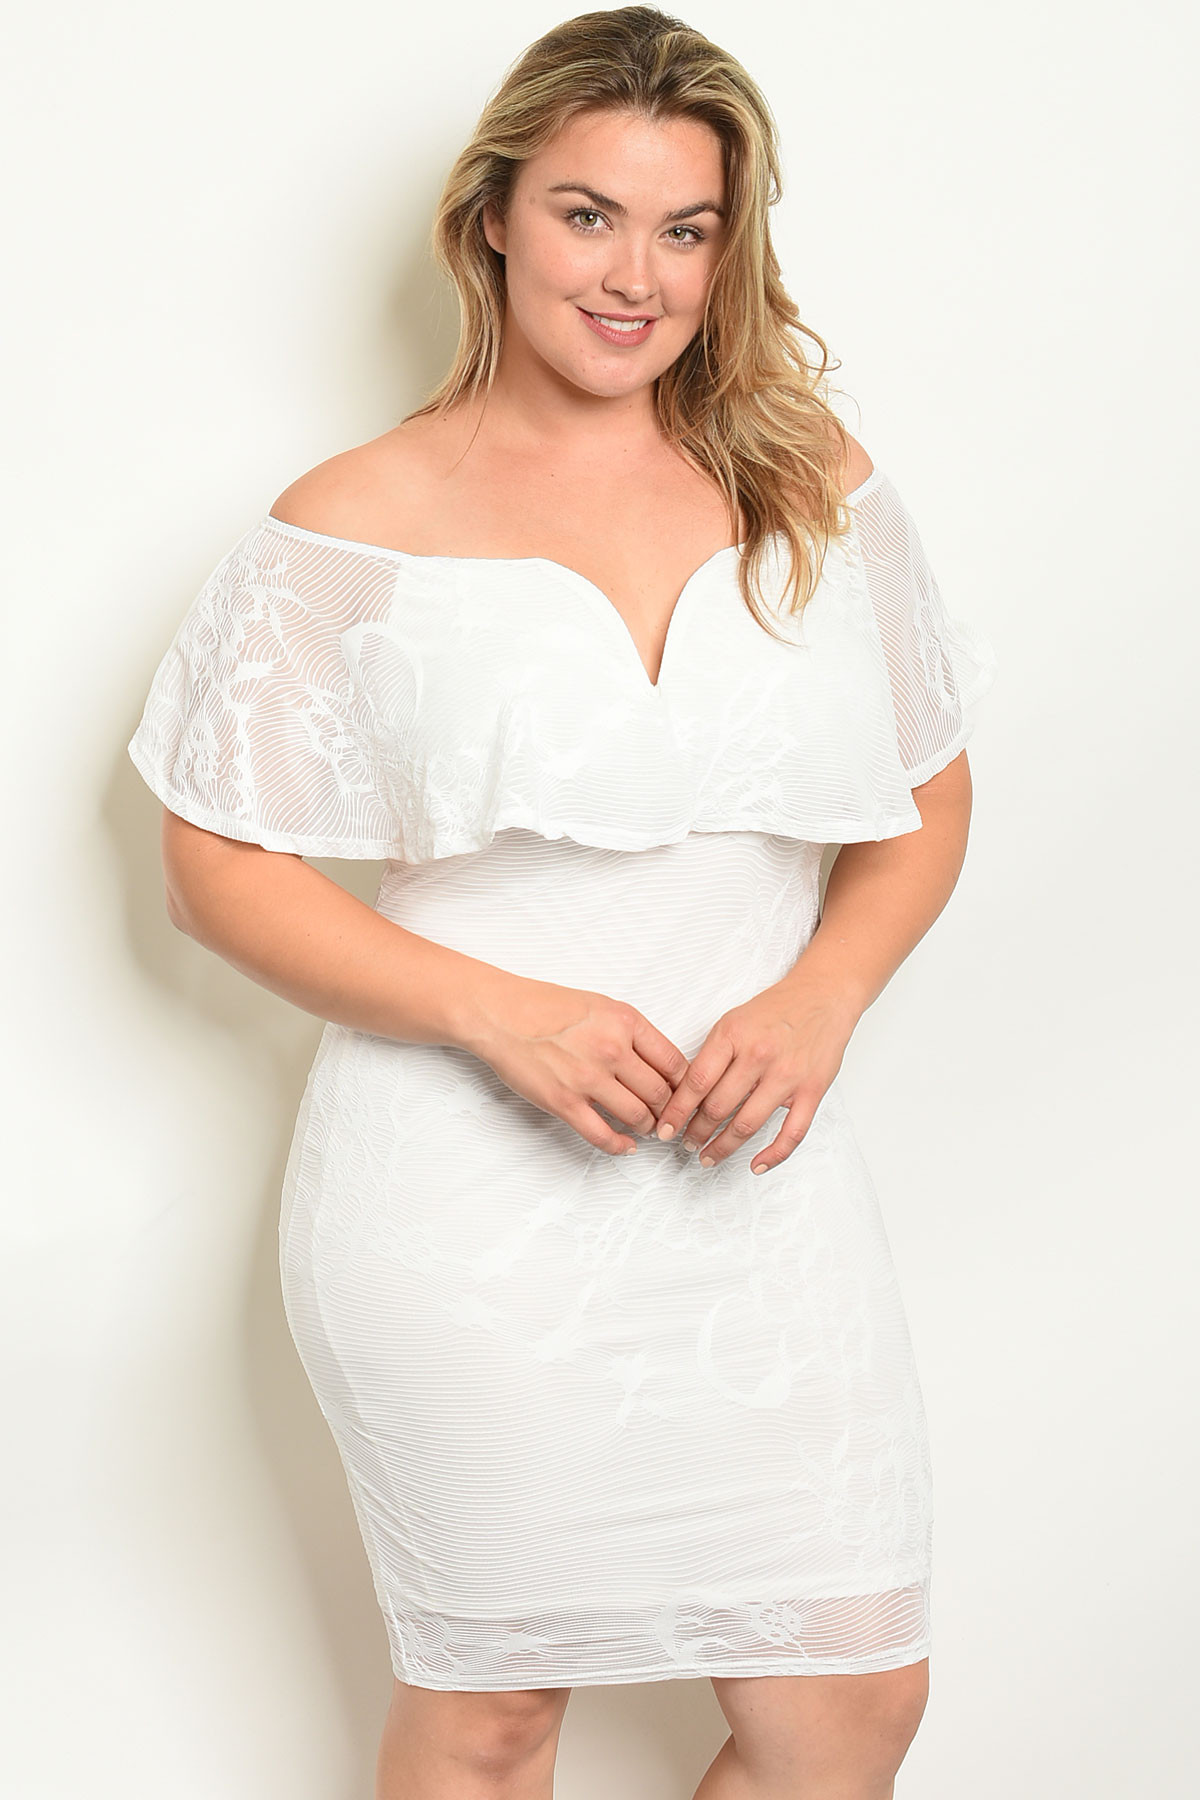 S22-13-1-D12789JX OFF WHITE PLUS SIZE DRESS 2-2-2